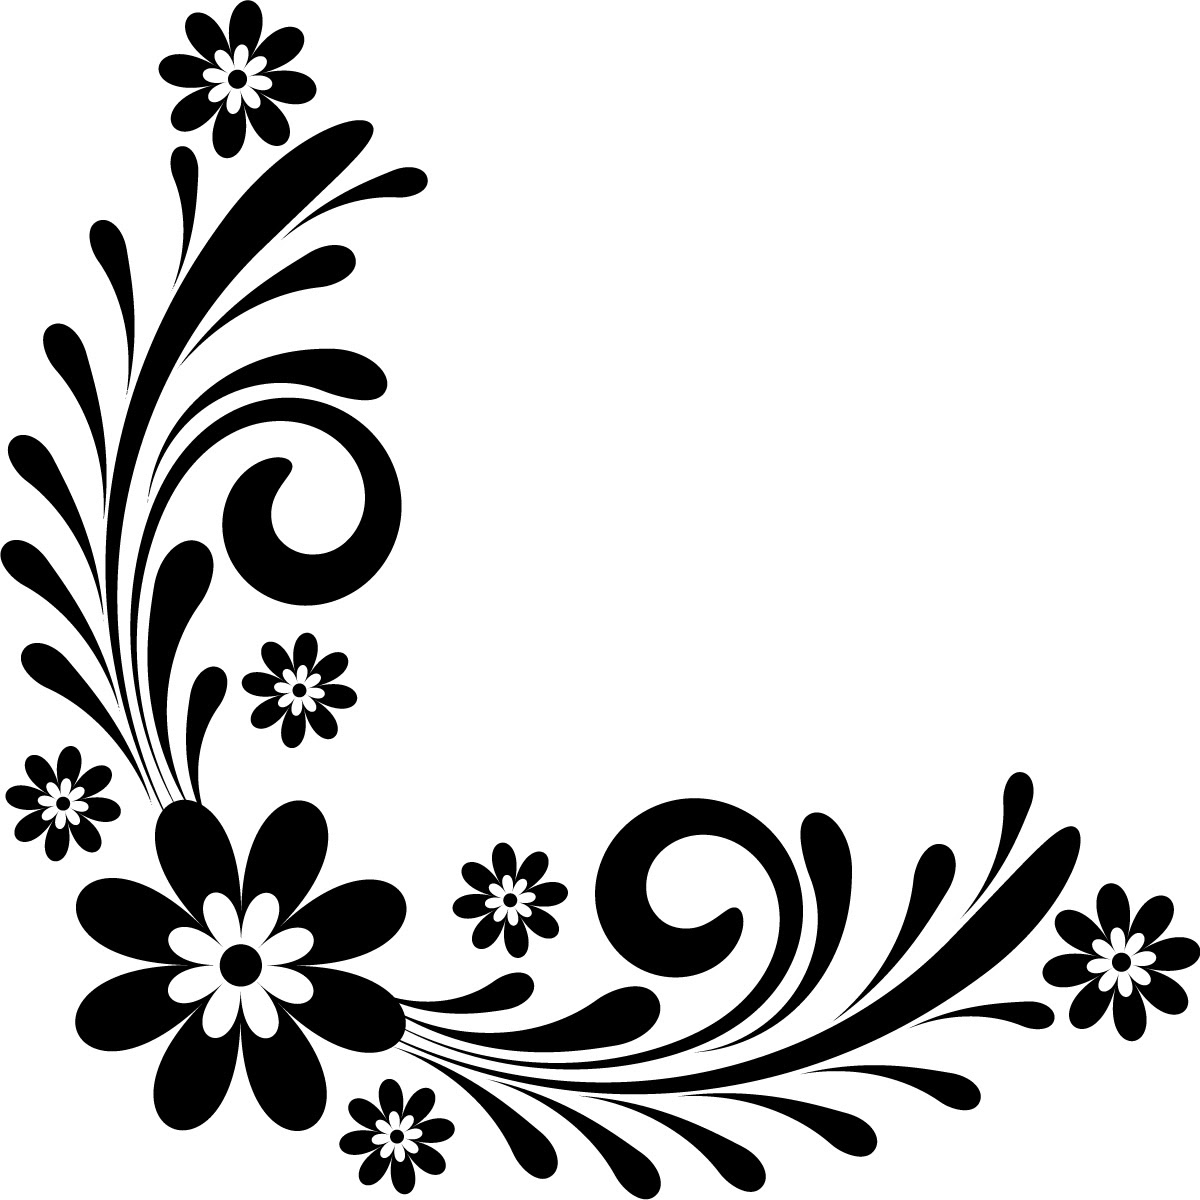 Border Design Black And White Clipart Free Download Best Border